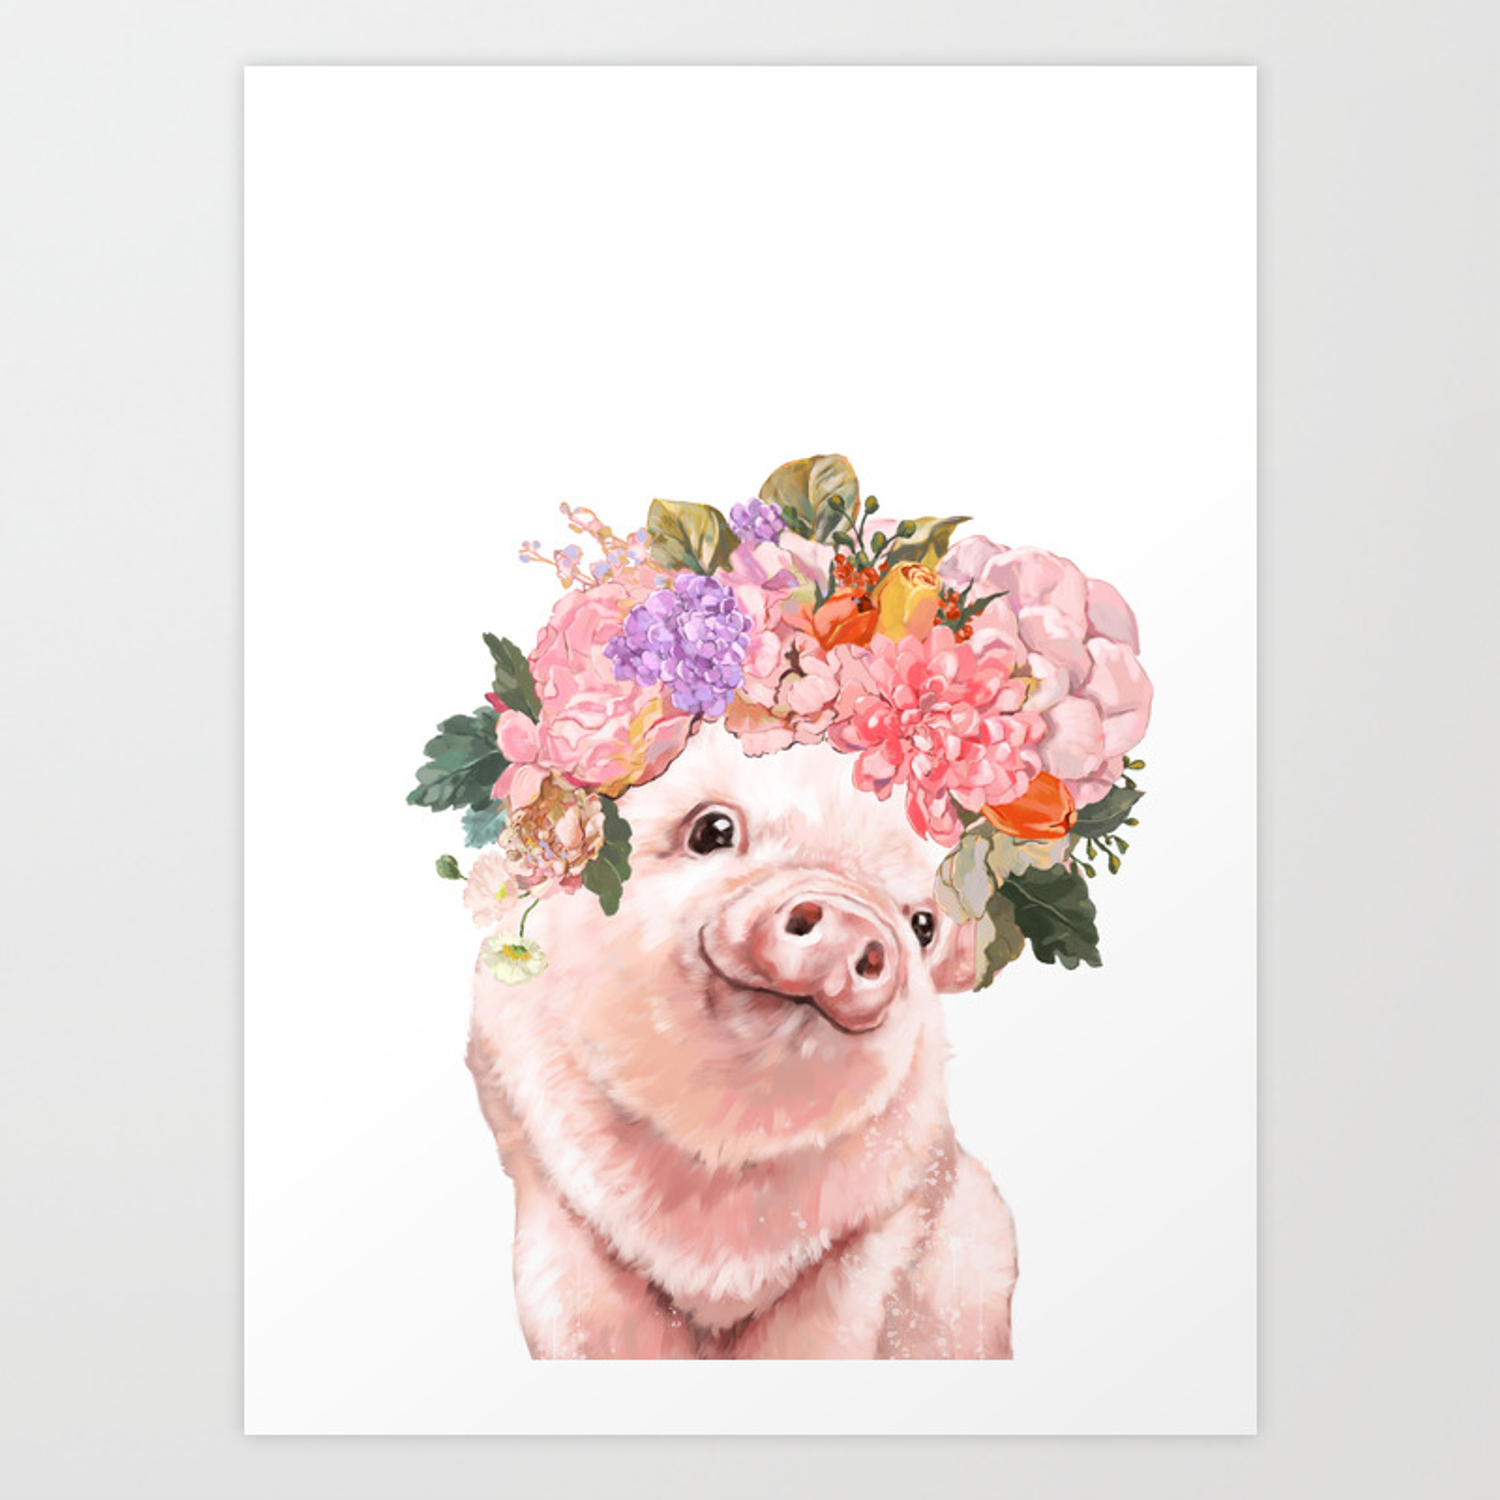 Lovely baby pig with flowers crown art print